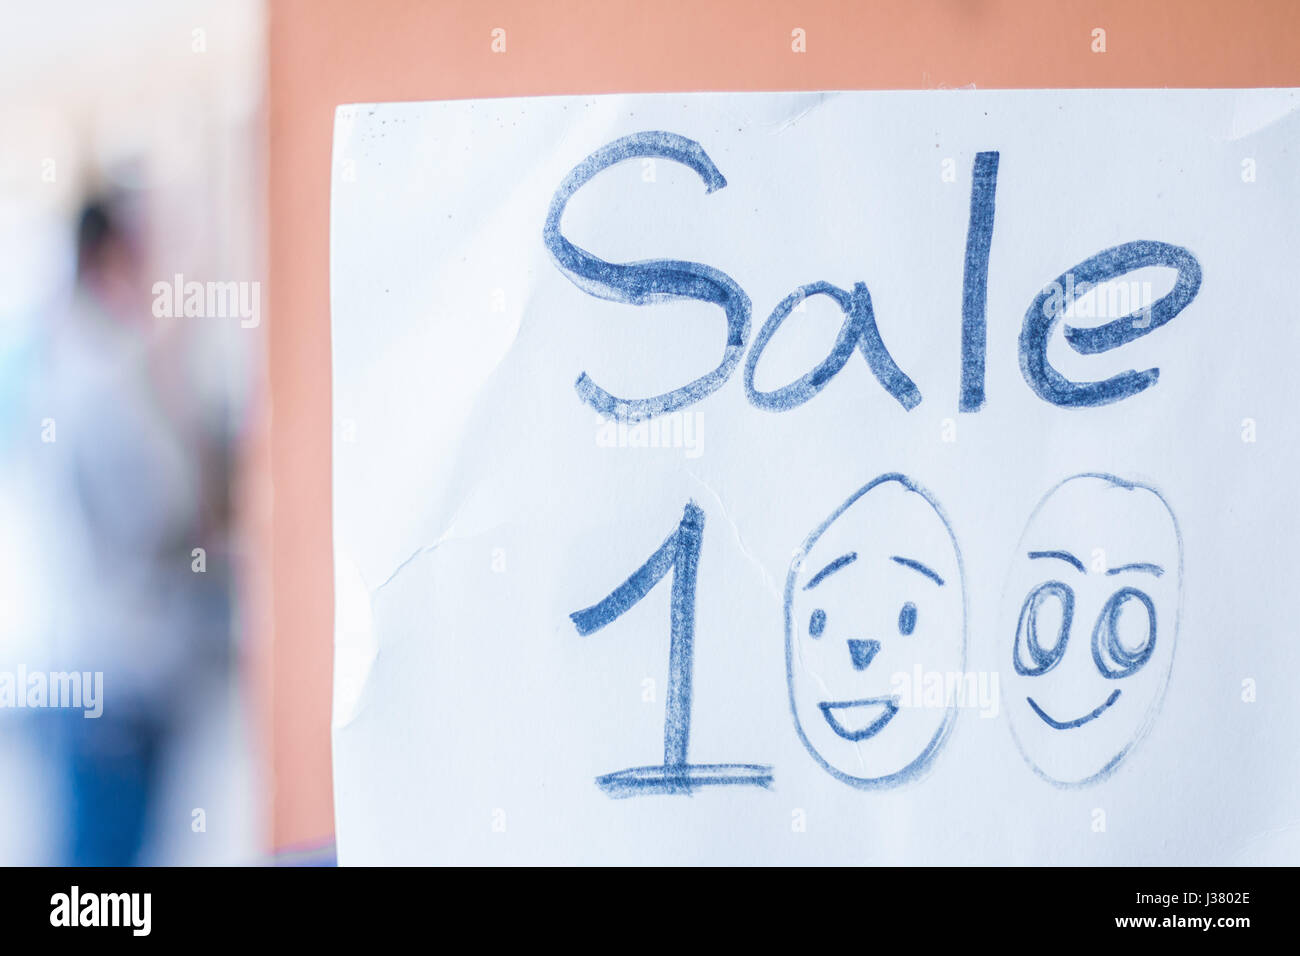 Sale,Price tag Hand written - Stock Image